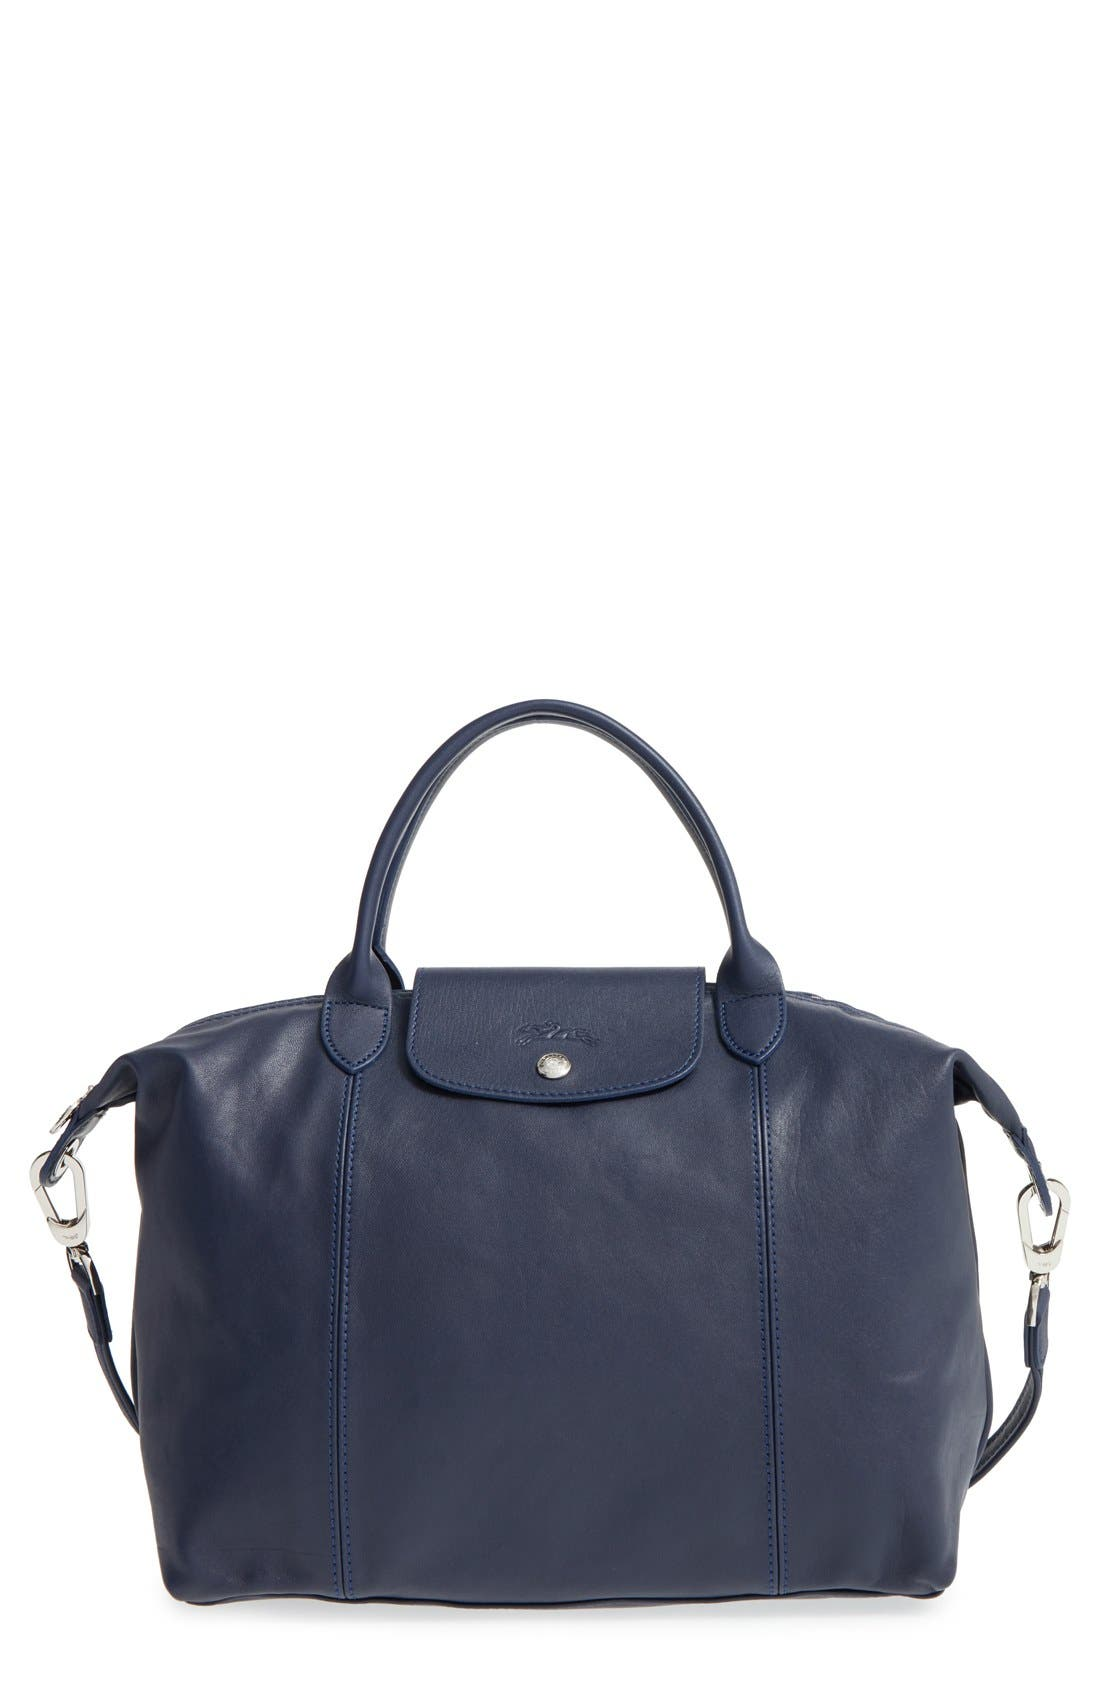 Medium 'Le Pliage Cuir' Leather Top Handle Tote,                             Main thumbnail 19, color,